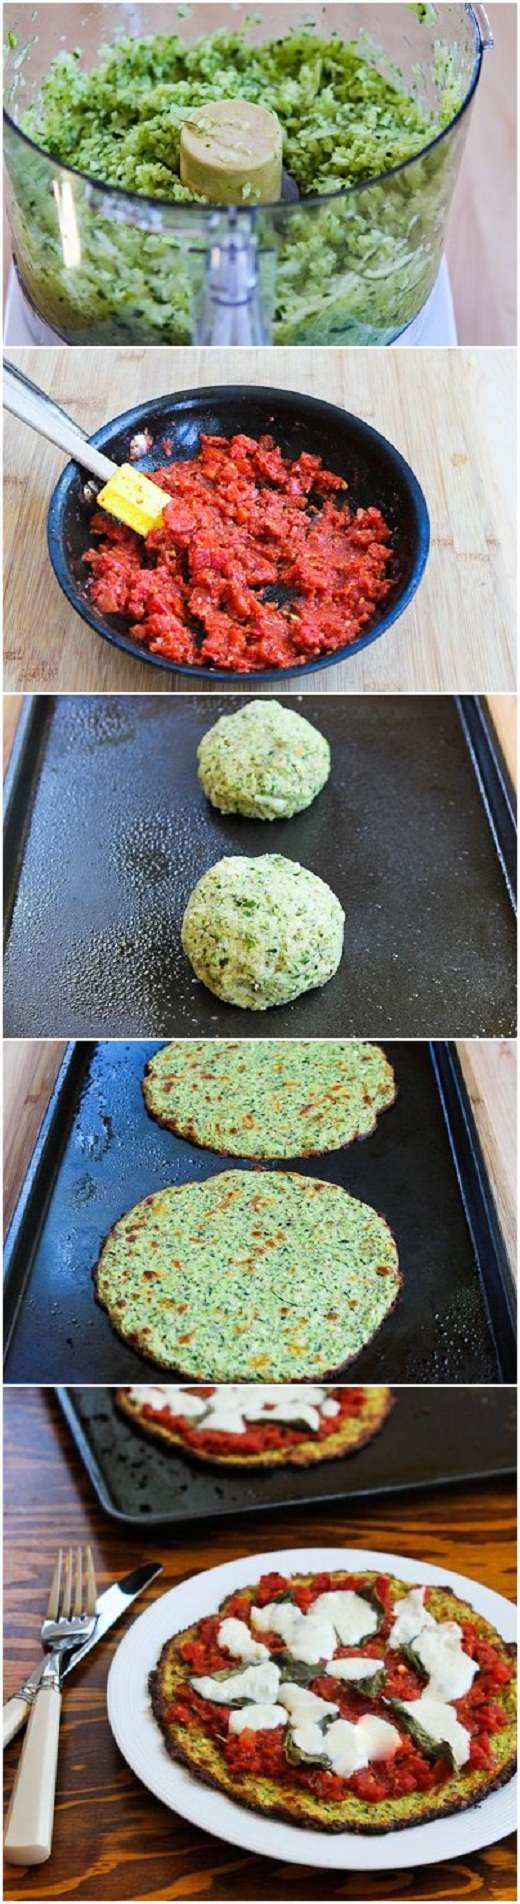 Zucchini-Crust-Vegetarian-Pizza-Recipe